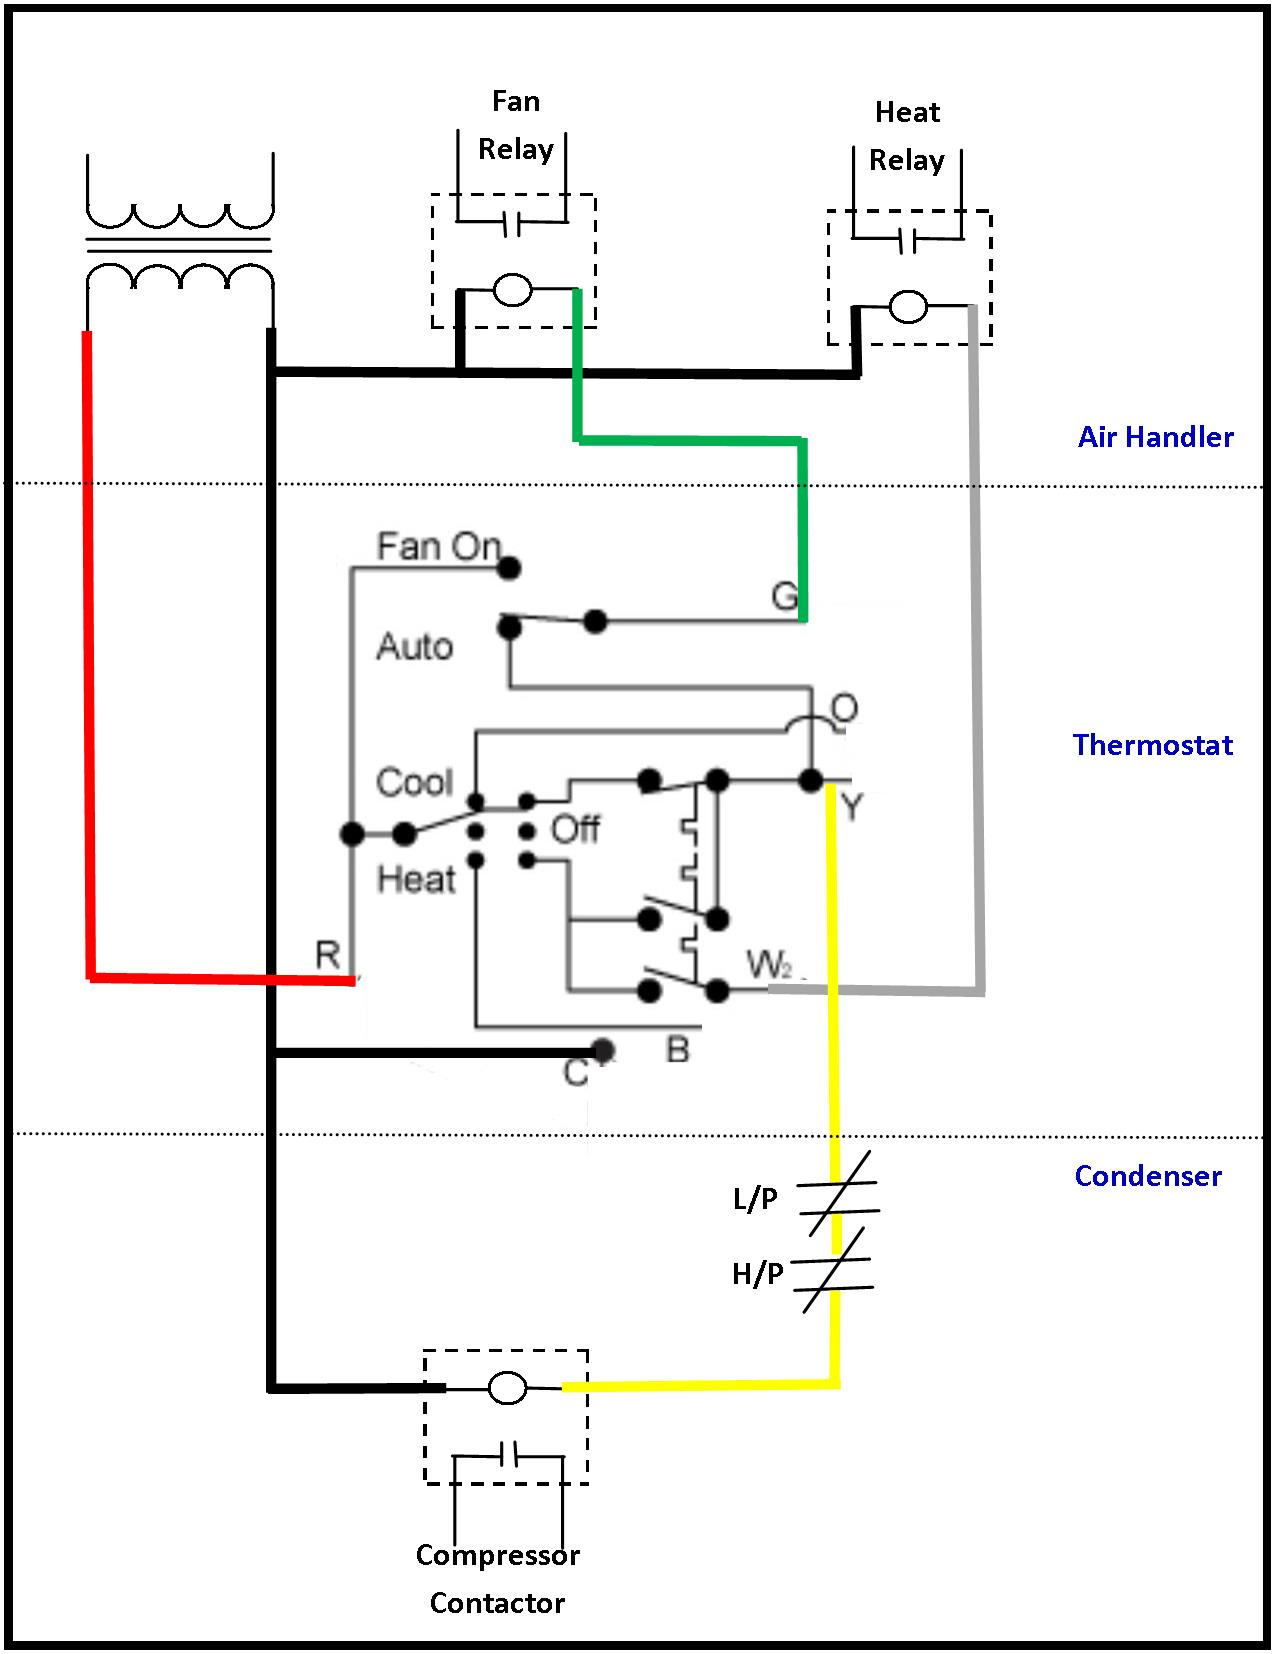 AC low voltage wiring diagram1 hvac wire diagram hvac diagrams schematics \u2022 wiring diagrams j Low Voltage Wiring Guide at honlapkeszites.co